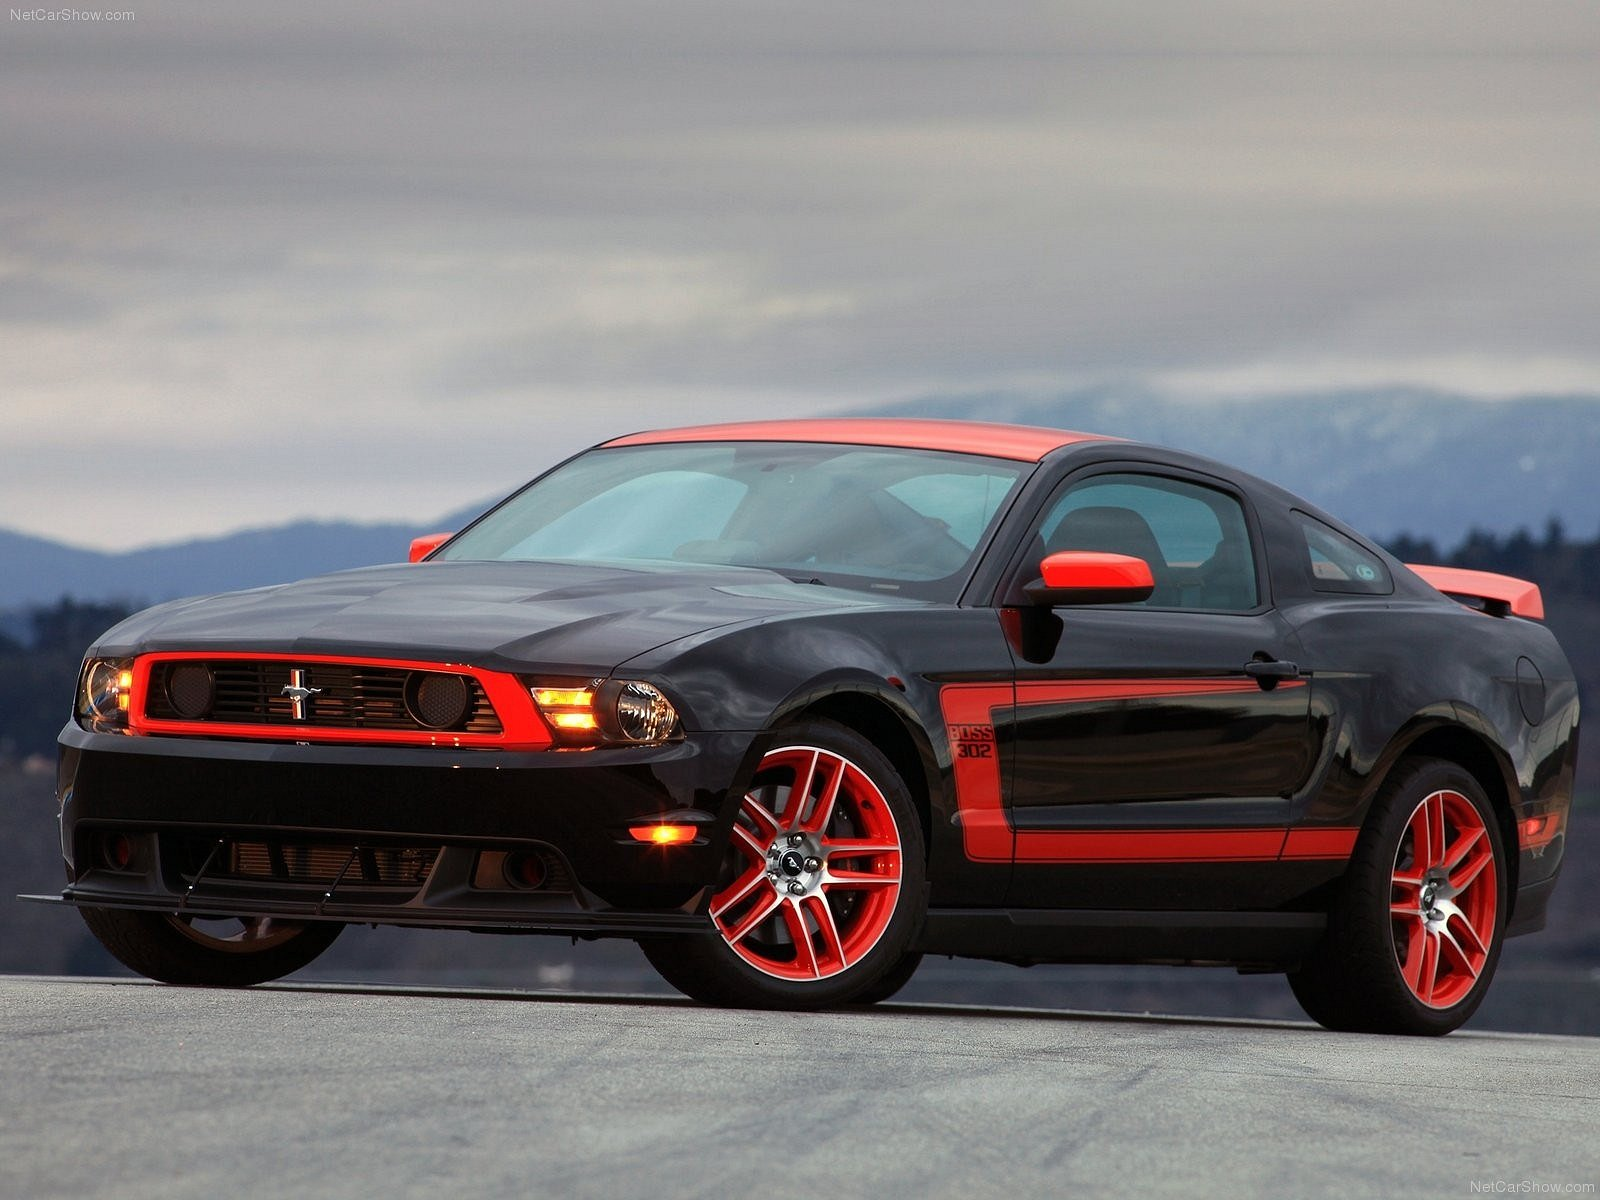 Ford Mustang Boss 302 Laguna Seca Desktop wallpapers